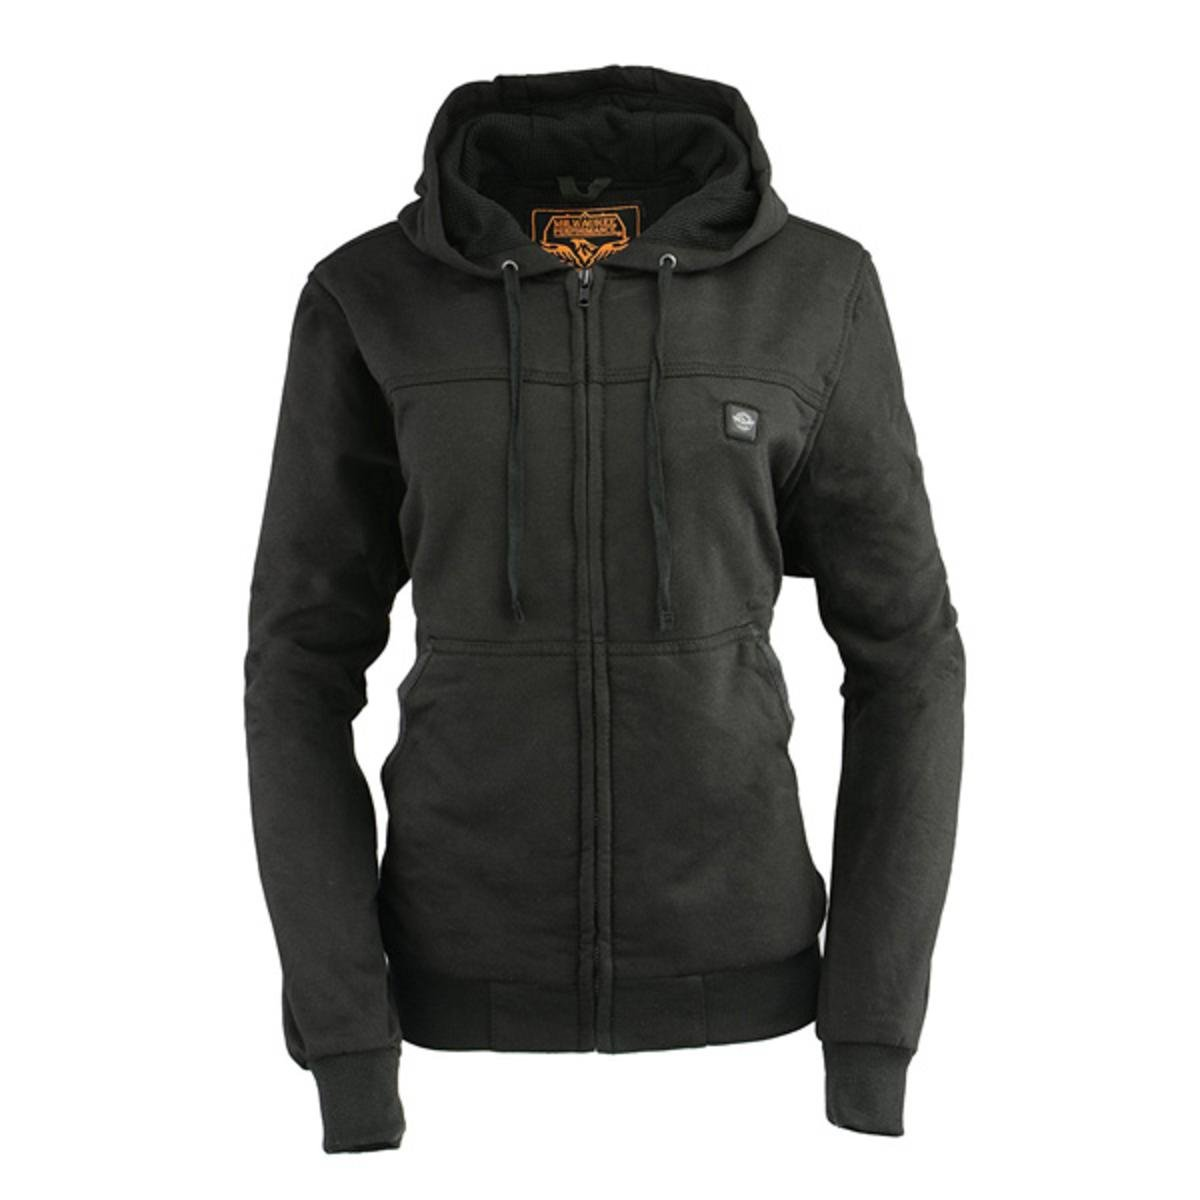 Womens Heated Clothing >> Milwaukee Performance 12v Womens Heated Hoodie With Front Back Heating Elements